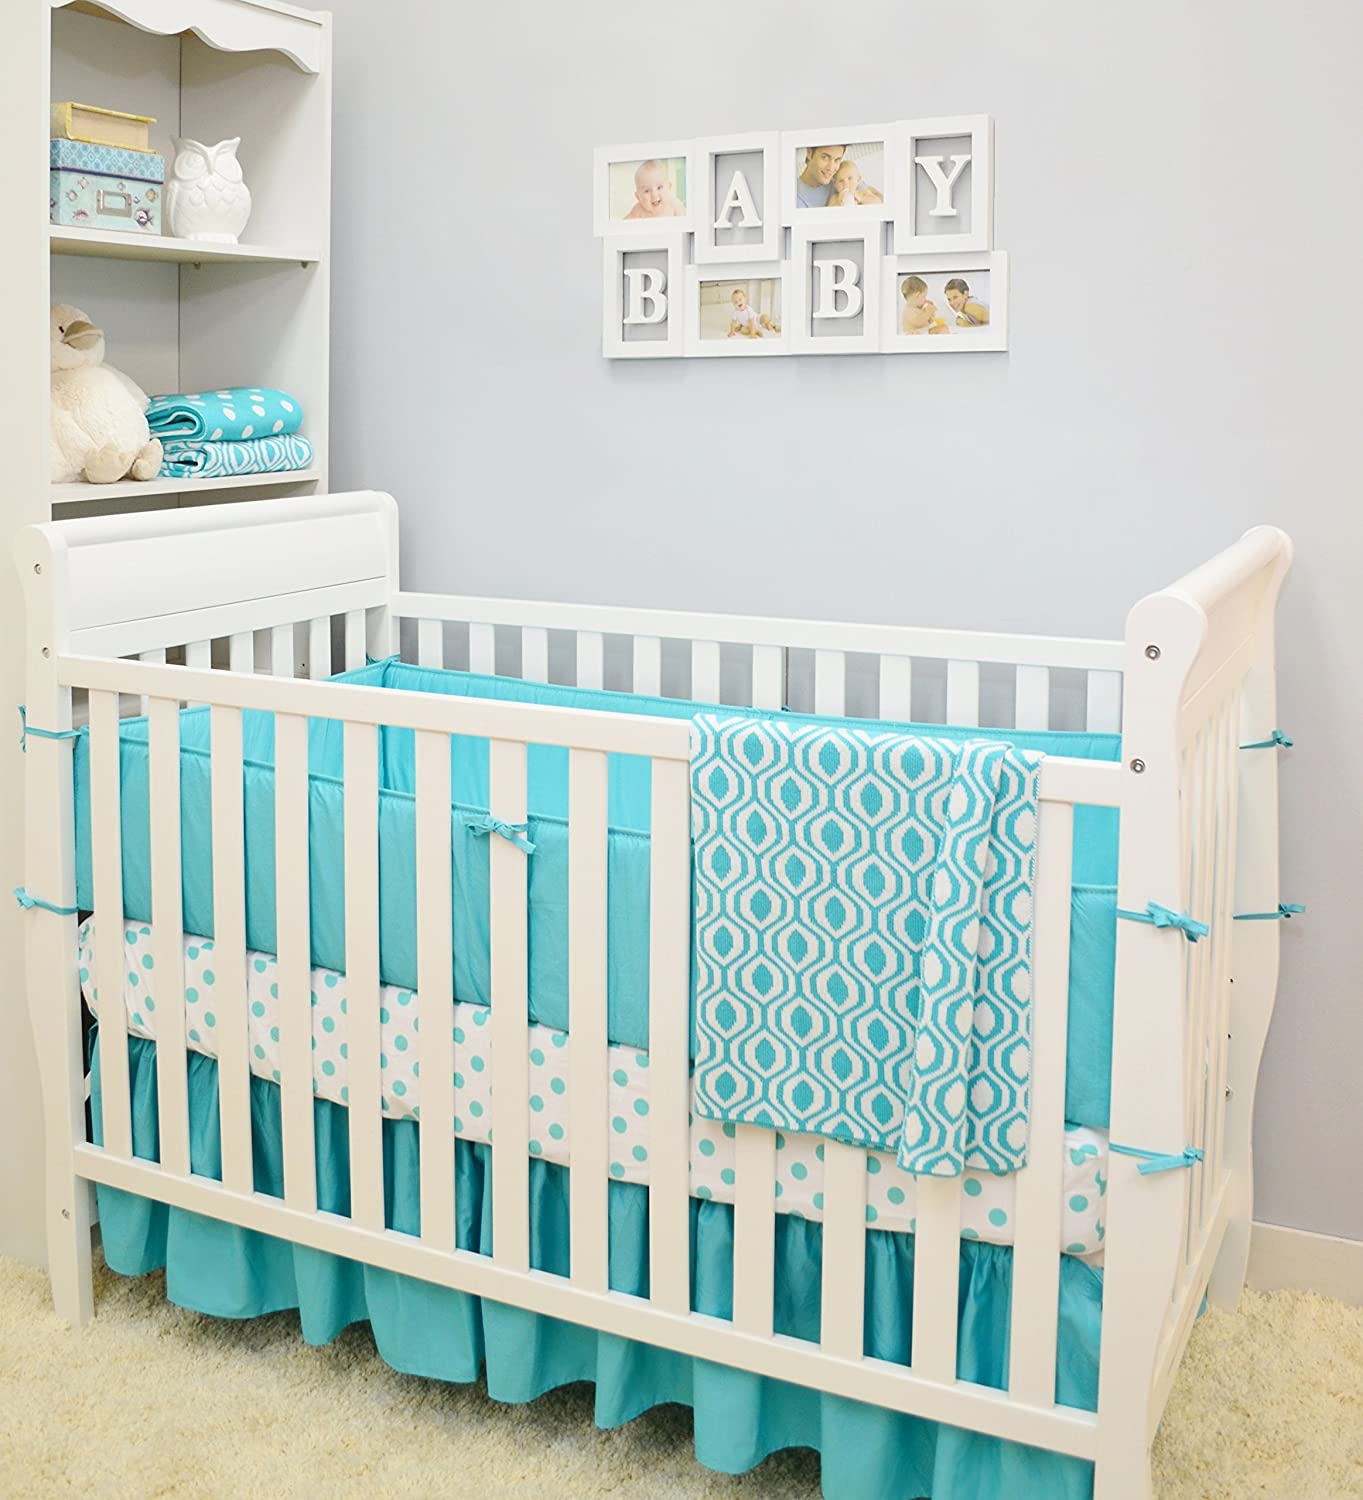 bedding gold beddings size floral decor baby full comforter wall gray teal with conjunction in of navy plus and also crib aqua nursery as well pink cribs together skirt coral turquoise